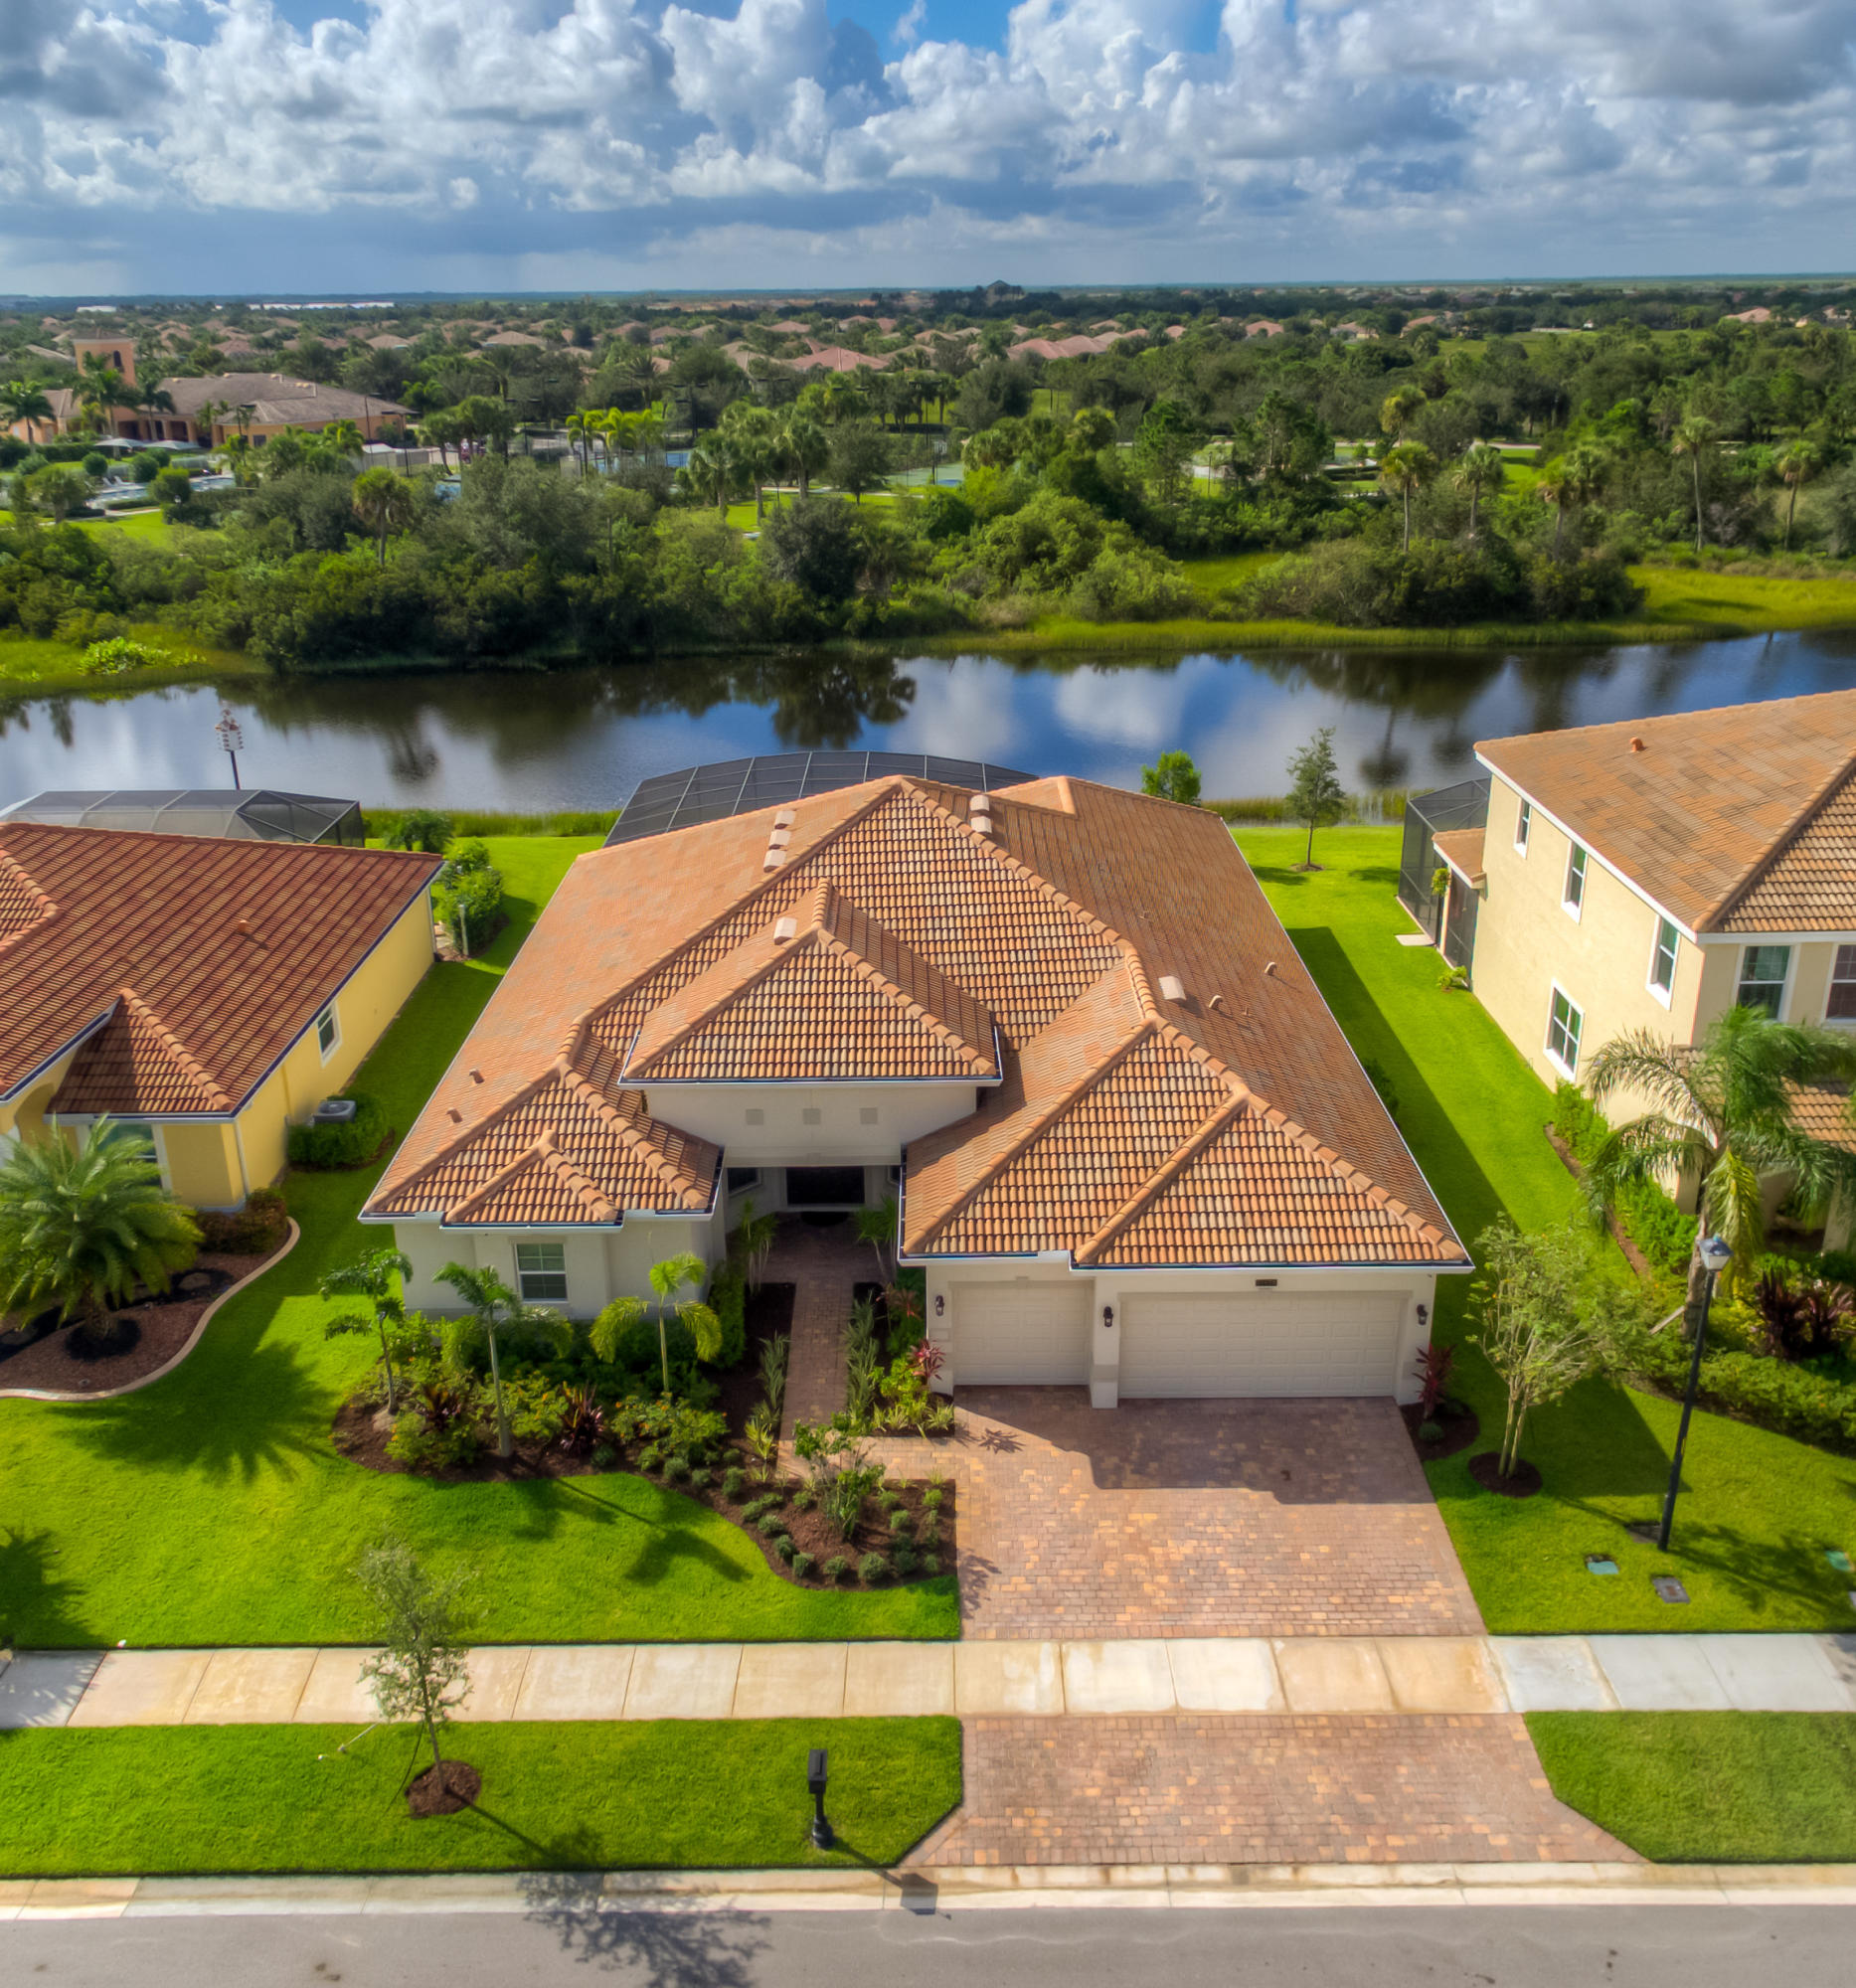 Wow! This 2016 D.R. Horton-built estate pool home is loaded with gorgeous, modern amenities. First take notice of its ideal location that is within walking distance to the community pool, yet still offers a secluded, private, and quiet preserve/lake view. A predominantly North/South orientation allows the most daily light exposure to soak up the warm Florida sun while relaxing poolside. Inside, countless upgrades have taken this home above all others. The open and inviting floorplan is perfect for entertaining yet still has 5 spacious bedrooms.  Decorative crown, base, window, and door moldings have been added and enhanced throughout. Interior painting, new lighting fixtures, fans, and decor were carefully selected to coordinate beautifully. (click link to read more) Wow! This 2016 D.R. Horton-built estate pool home is loaded with gorgeous, modern amenities. First take notice of its ideal location that is within walking distance to the community pool, yet still offers a secluded, private, and quiet preserve/lake view. A predominantly North/South orientation allows the most daily light exposure to soak up the warm Florida sun while relaxing poolside.  Inside, countless upgrades have taken this home above all others. The open and inviting floorplan is perfect for entertaining yet still has 5 spacious bedrooms.  Decorative crown, base, window, and door moldings have been added and enhanced throughout. Interior painting, new lighting fixtures, fans, and décor were carefully selected to coordinate beautifully.  An elegant dark wood kitchen boasts a ton of room for gathering or cooking with a Frigidaire Professional Stainless Steel appliances package. Santa Cecelia granite countertops, a central island, tile backsplash, and under cabinet, recessed, and pendant lighting make the kitchen a focal point. A wet-bar is centrally located for easy access and entertaining as well. The 2 front guest rooms share a bathroom with dual sinks and granite top. All of the 3 bathrooms' fix